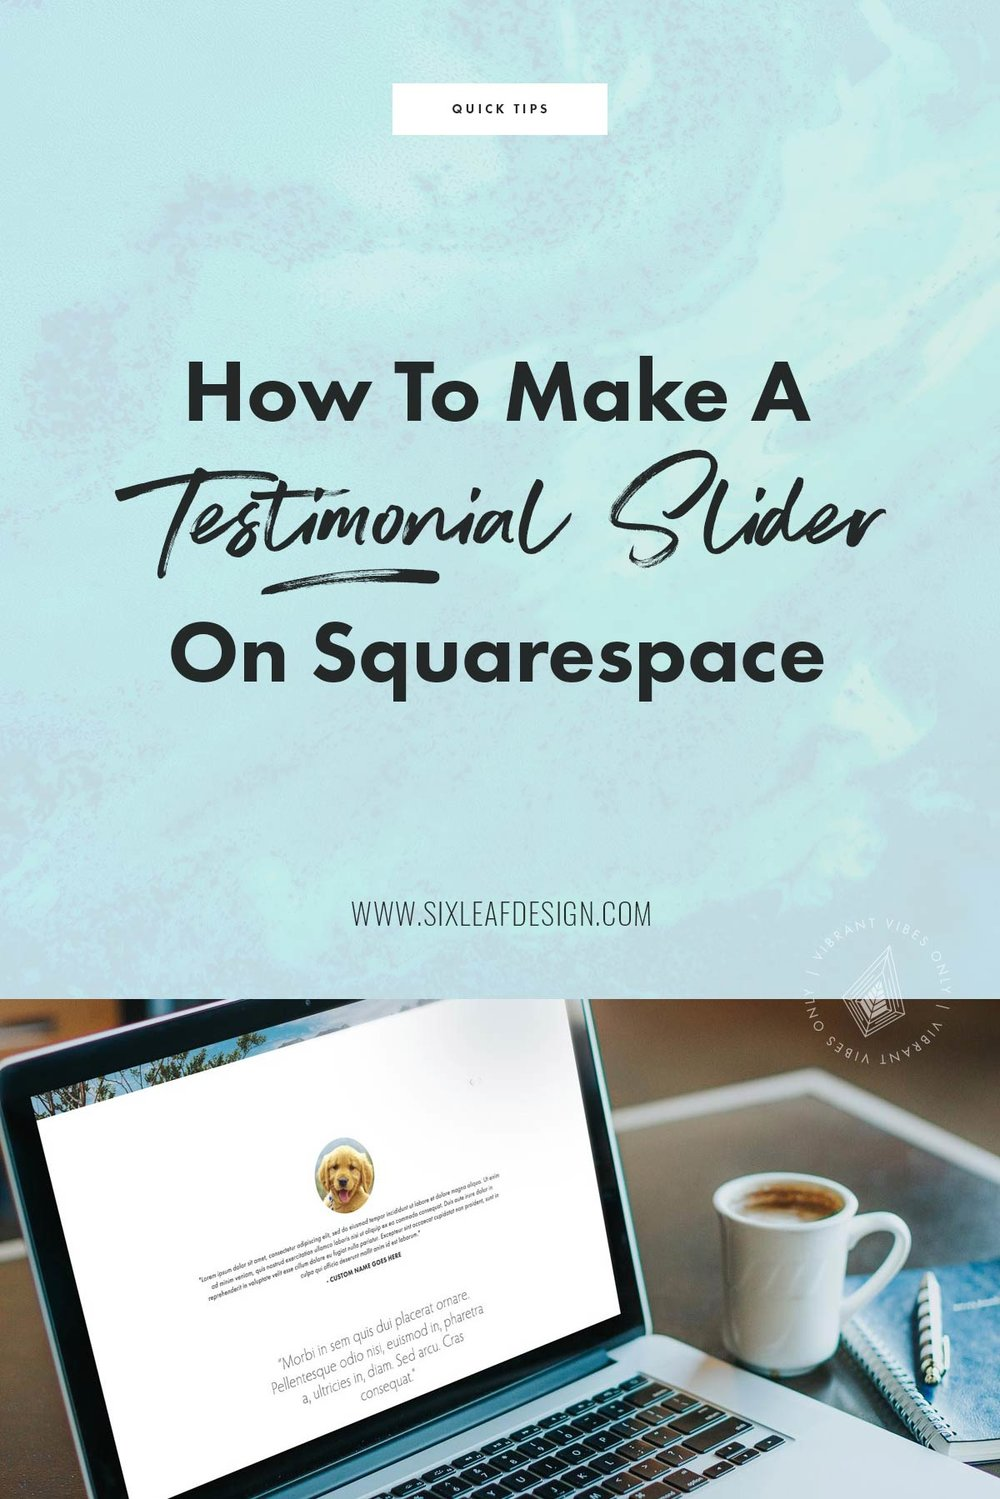 How To Make A Testimonial Slider on Squarespace